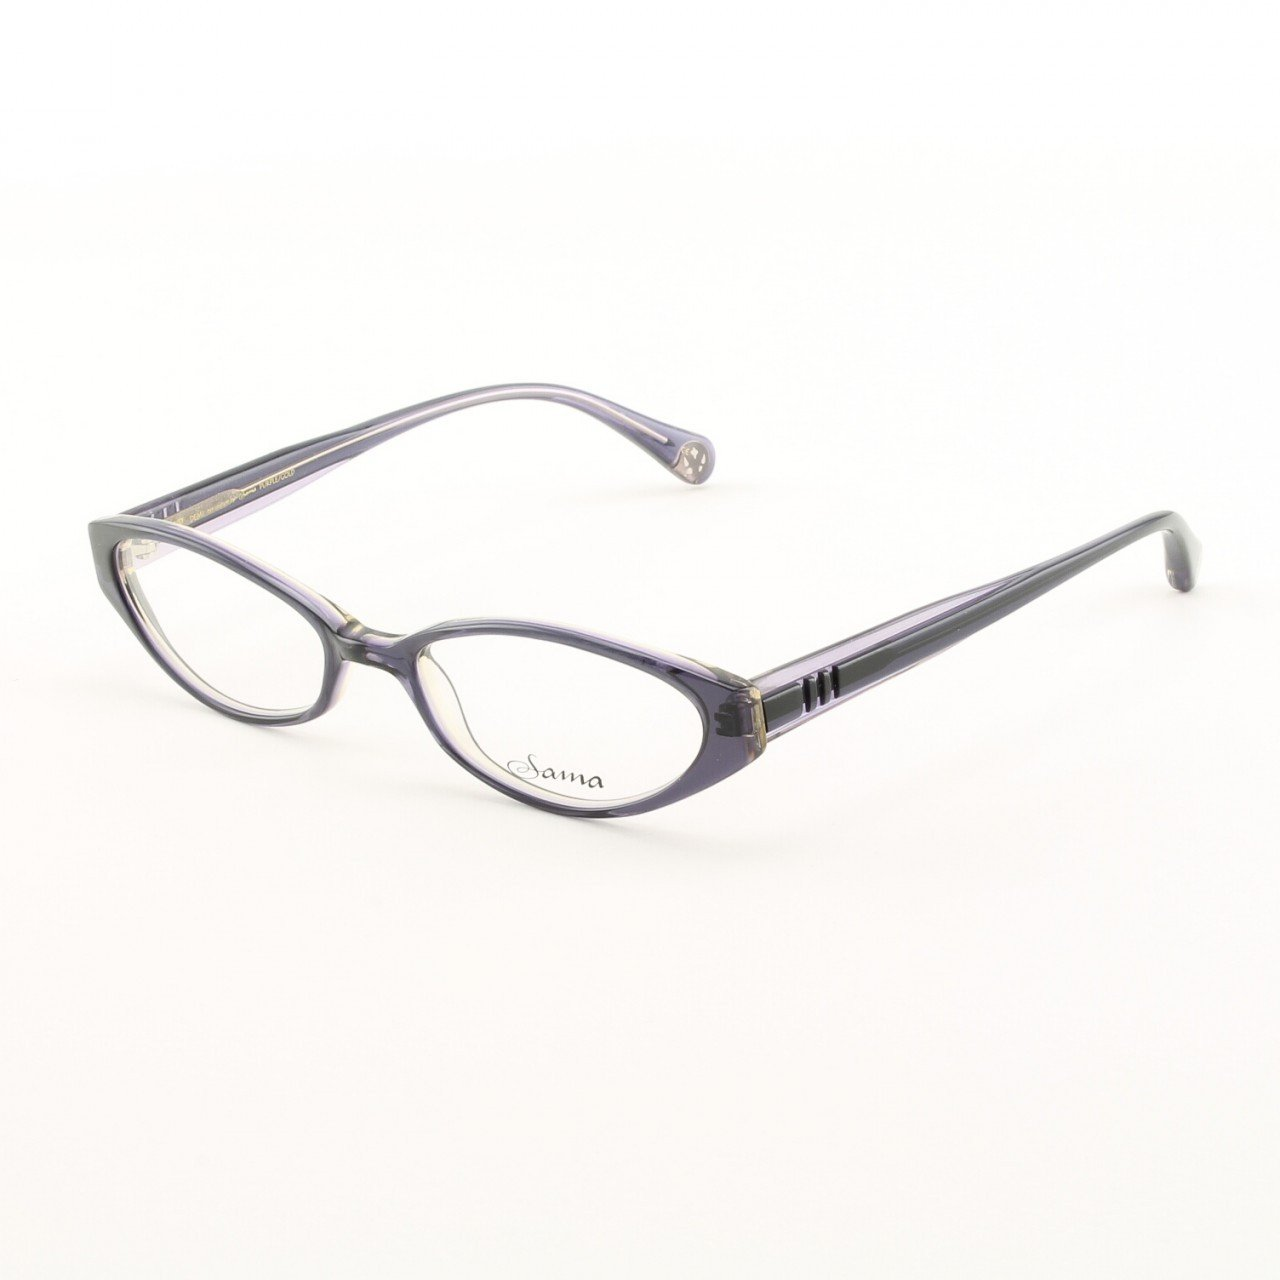 Loree Rodkin Demi Eyeglasses by Sama Col. Purple and Gold with Clear Lenses